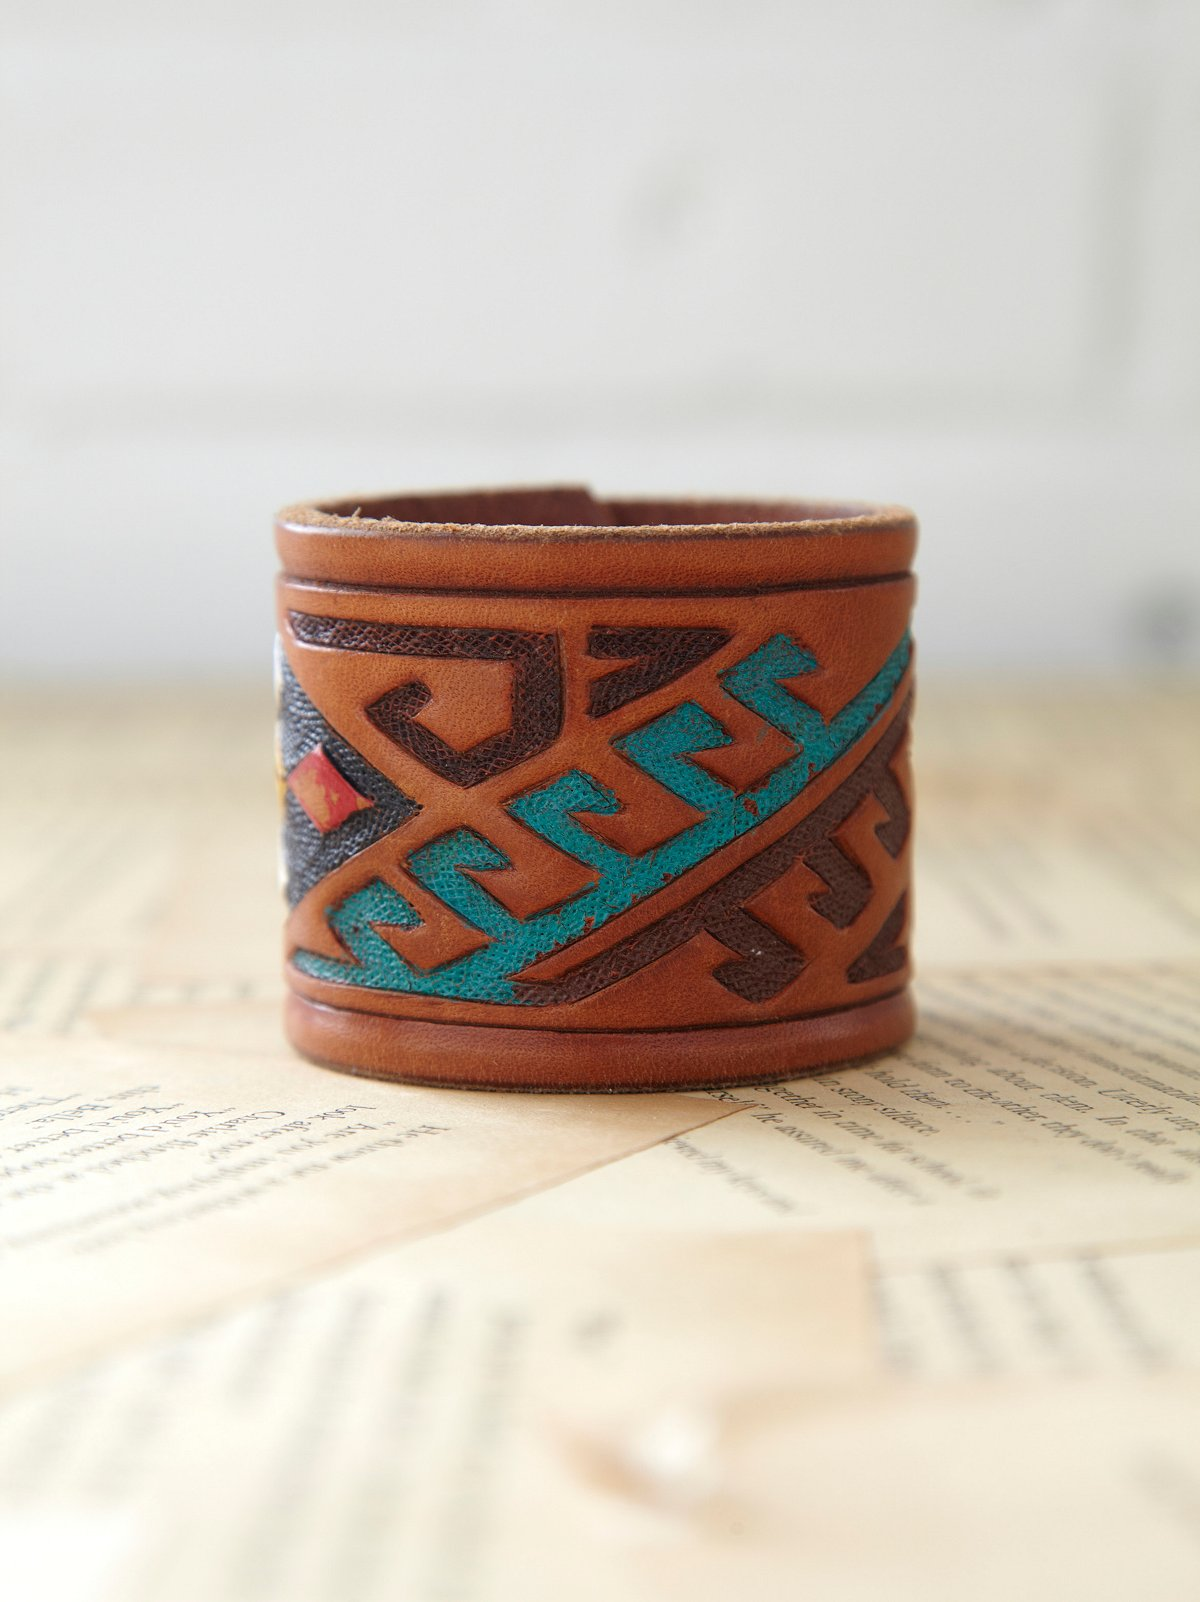 Vintage Leather Snap Cuff